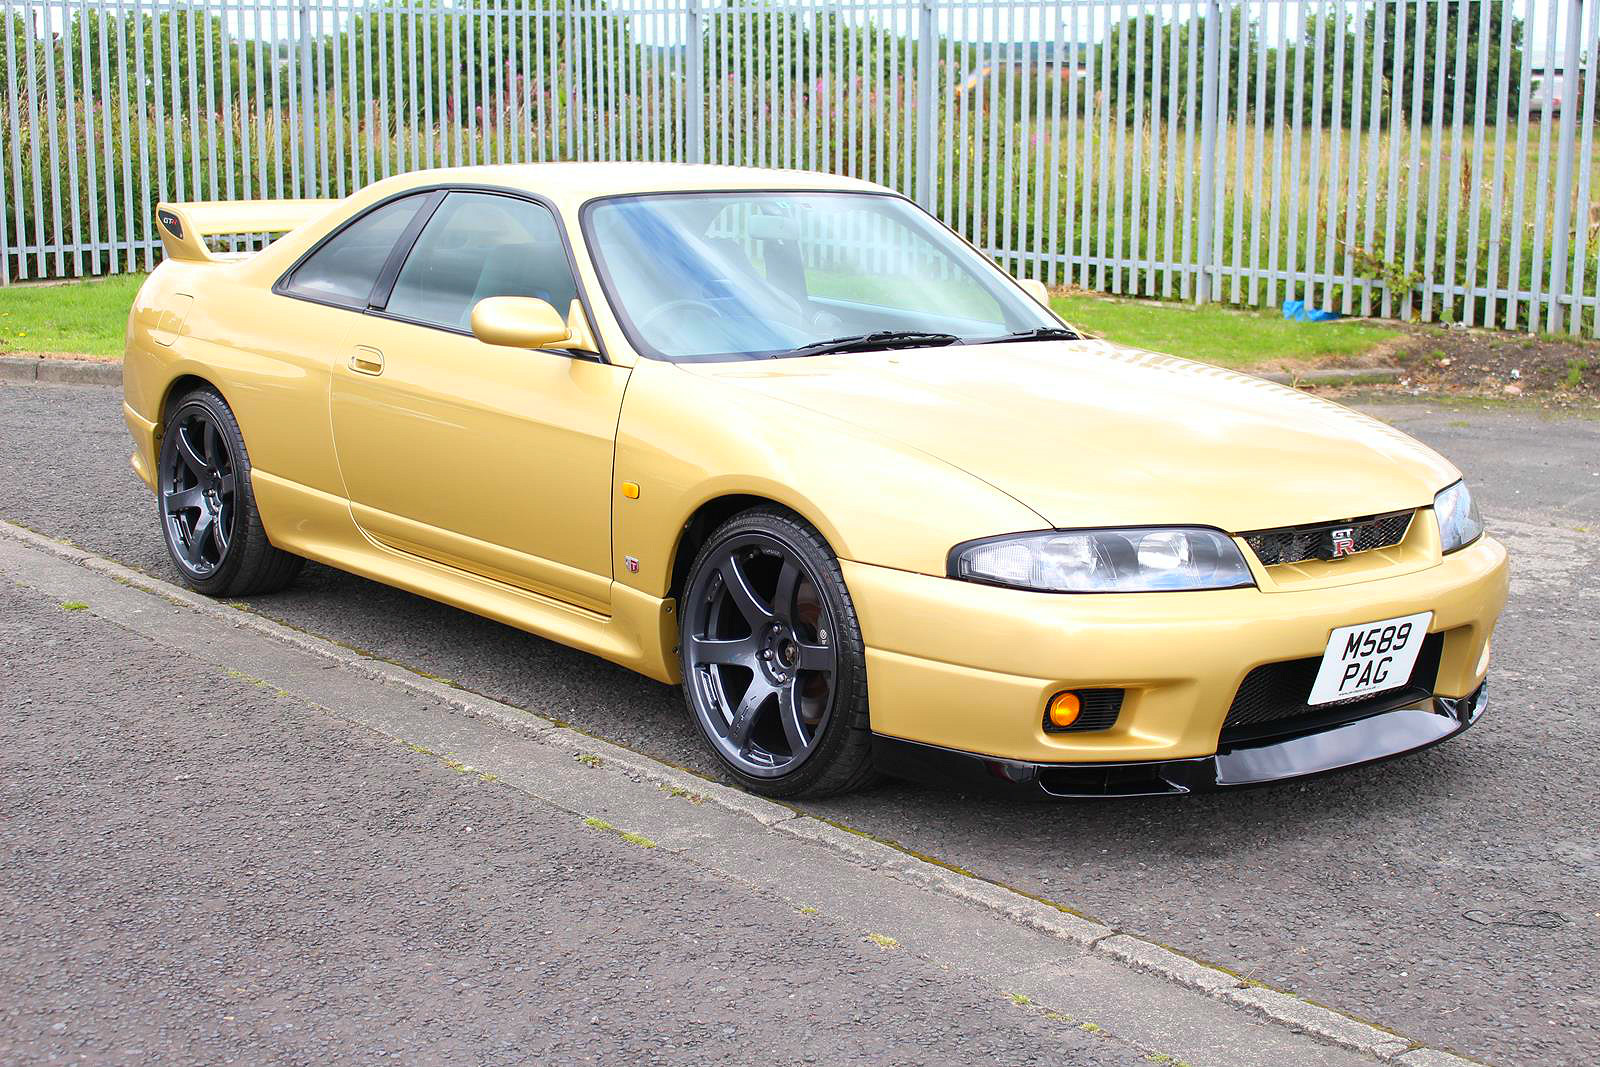 1995 nissan skyline r33 gtr top secret gold. Black Bedroom Furniture Sets. Home Design Ideas